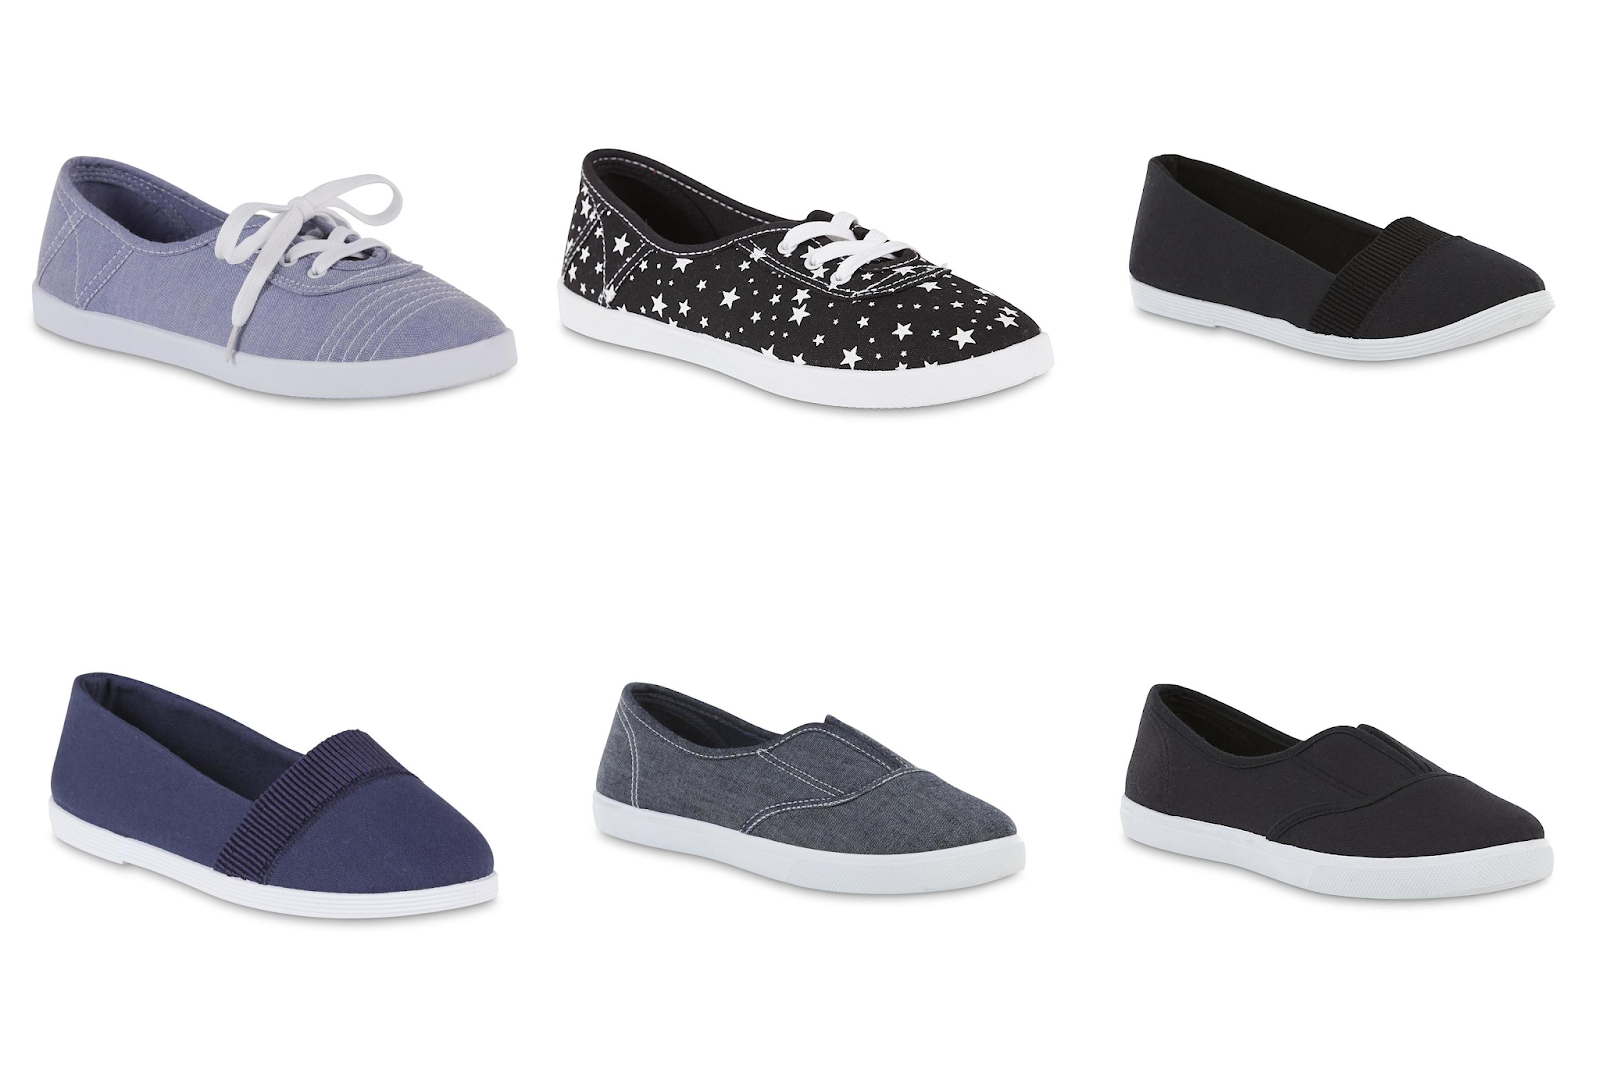 5ea8670300f DEAL IDEA (2)  Buy (2) Basic Editions Women s Sneakers Flats of your choice  to cart  5.99